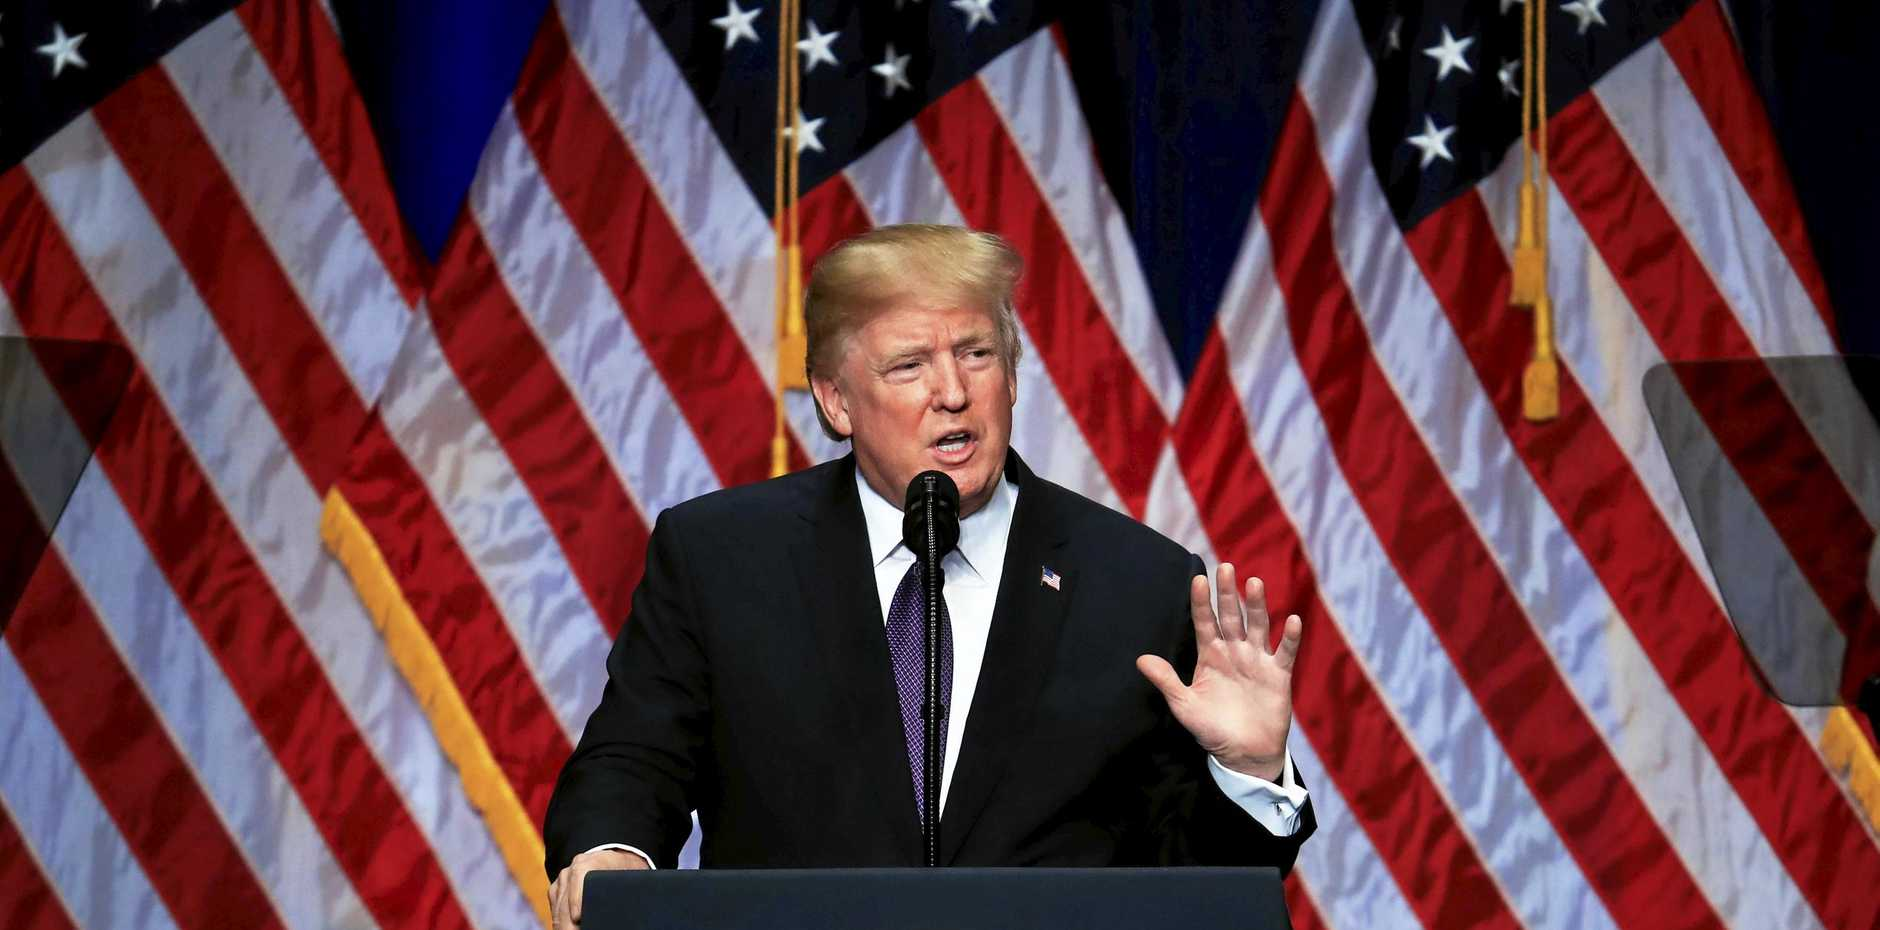 US President Donald Trump's comments on climate change have again been criticised by scientists.